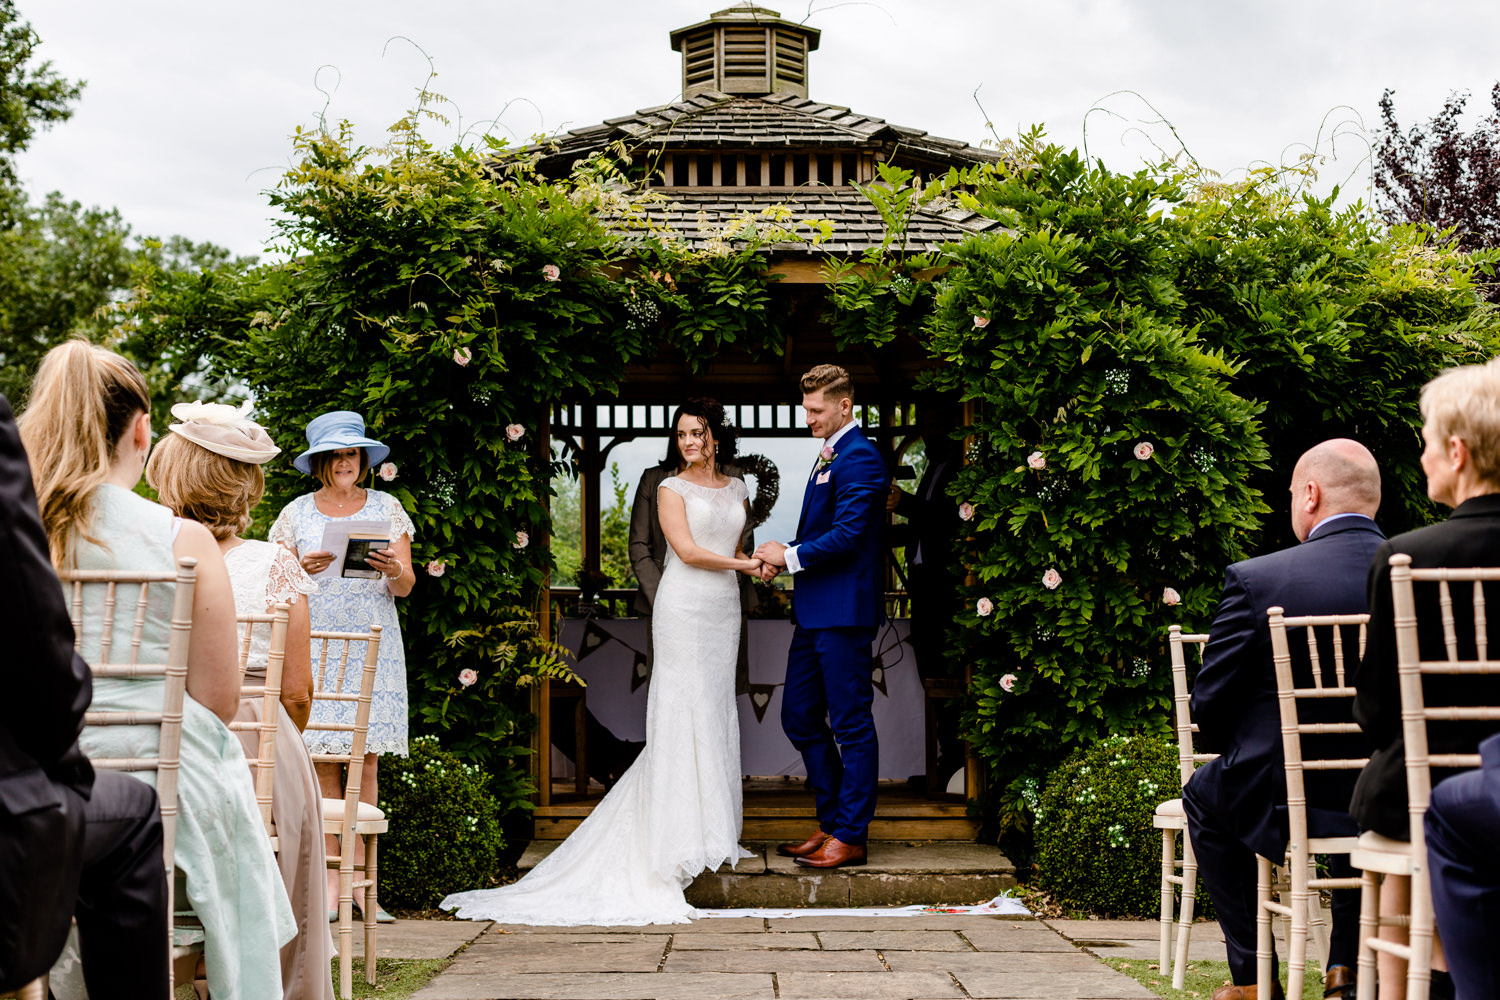 Outdoor wedding ceremony at Pryors Hayes in Cheshire.